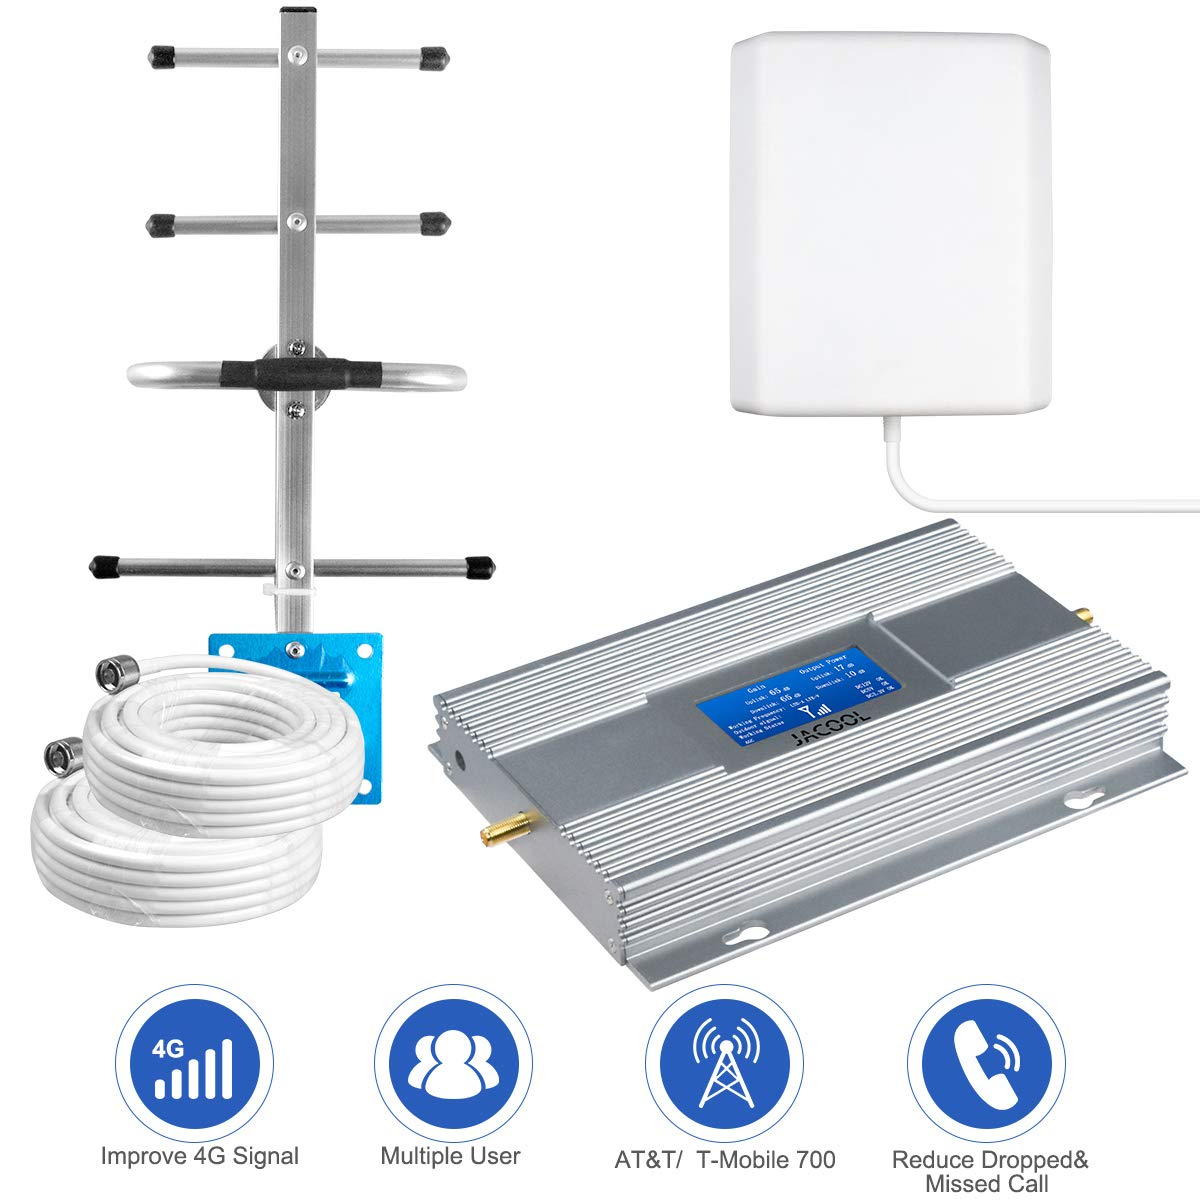 ATT Cell Phone Signal Booster 4G LTE Mobile Signal Booster Amplifier FDD AT&T T-Mobile Cell Signal Booster Repeater 700MHz Band 12/17 for Home - Coverage Upto 5,000 Sq Ft Panel Yagi Antennas